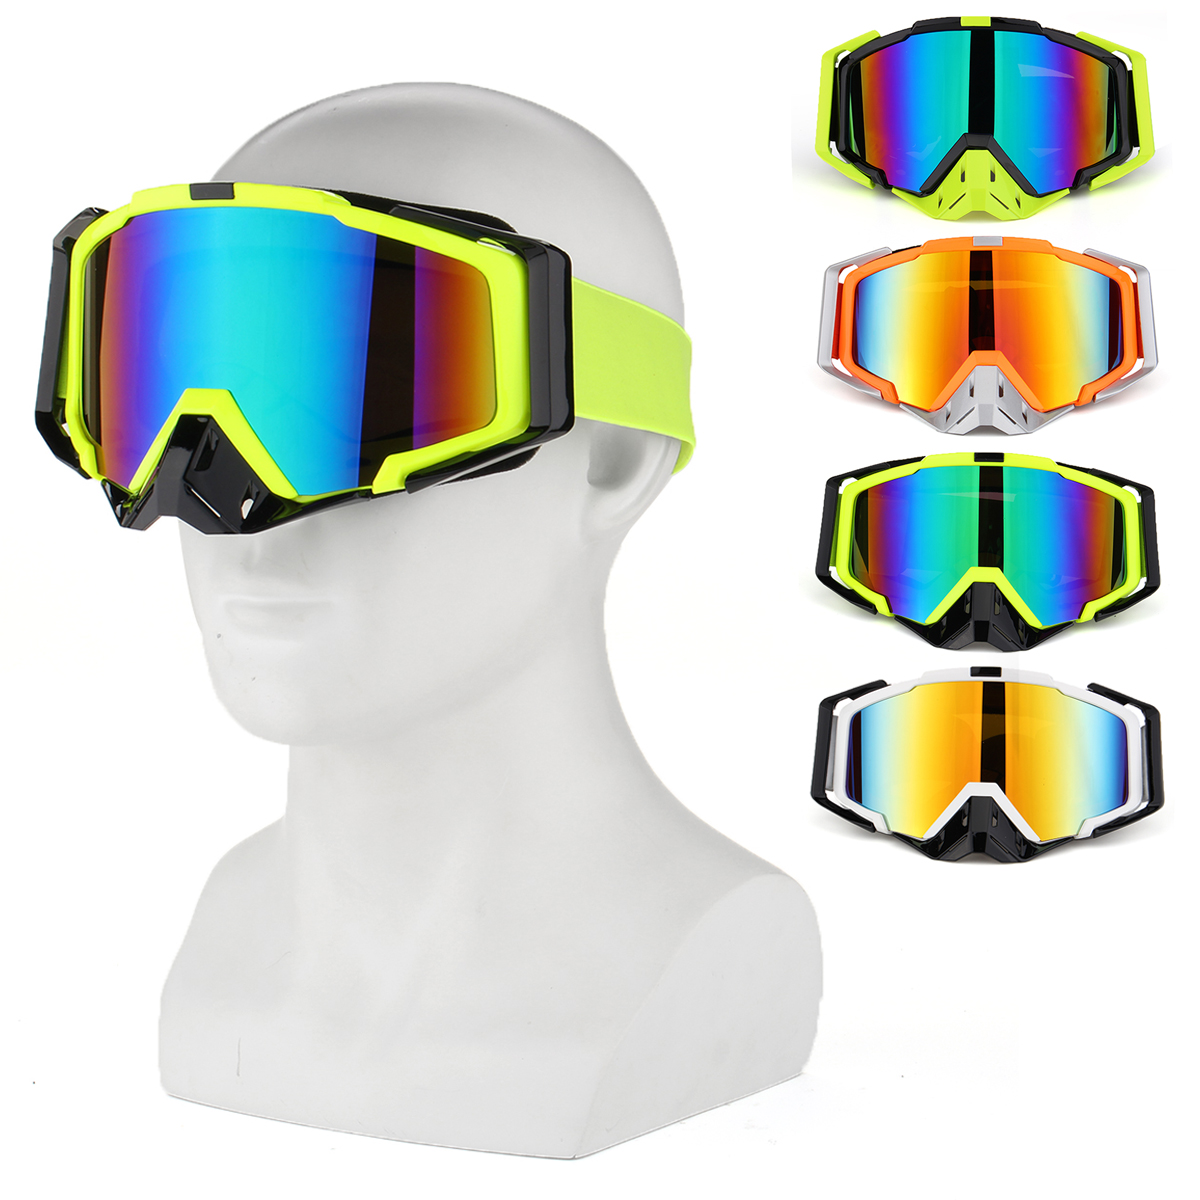 TYF102 Outdoor Skiing Skating Goggles Snowmobile Glasses Windproof Anti-Fog UV Protection For Men Wo